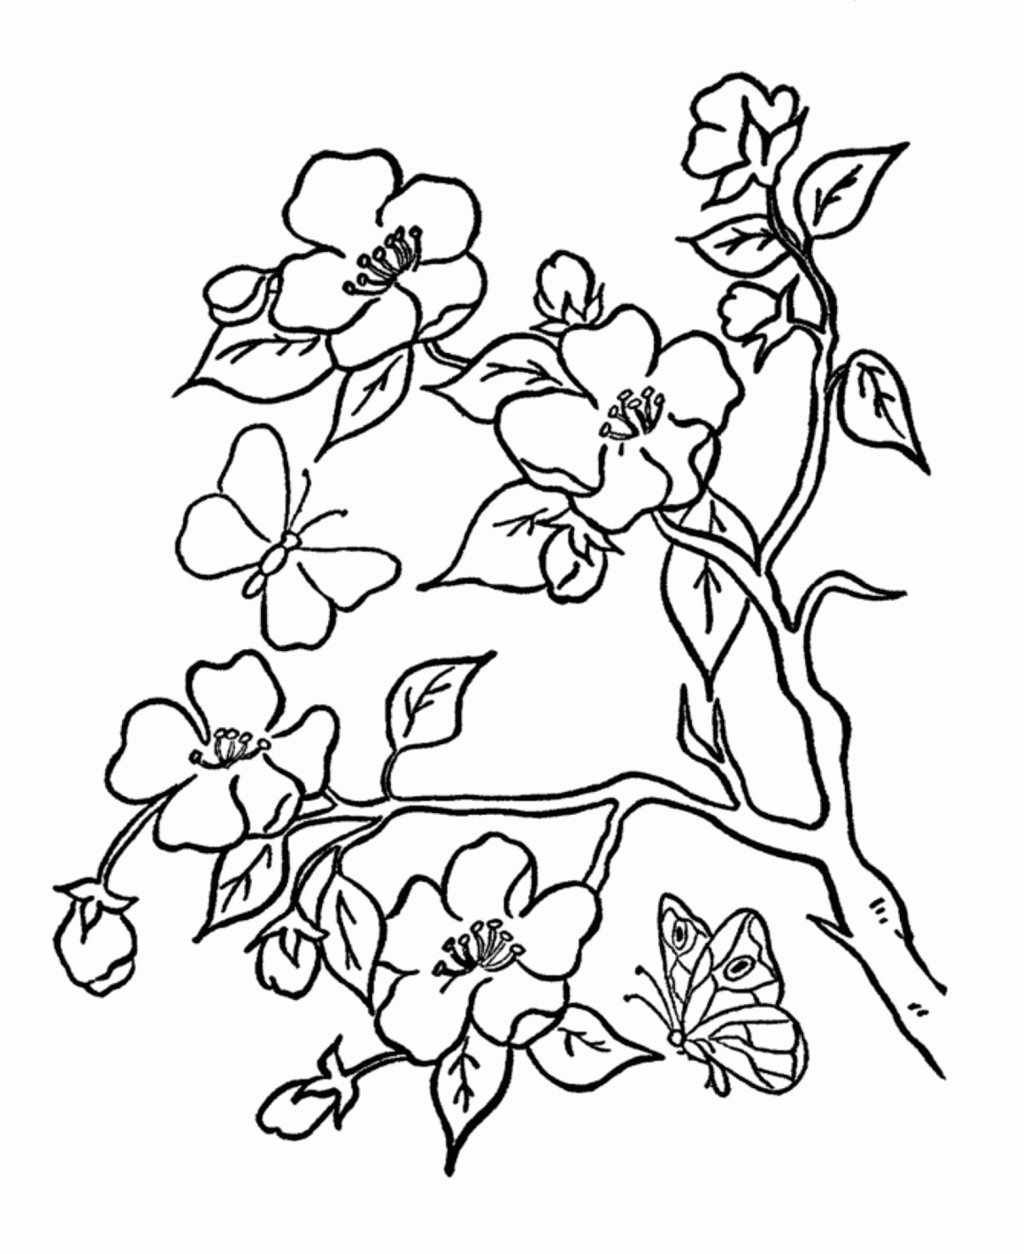 1024x1254 Awesome Spring Flower Coloring Pages Design Printable Coloring Sheet